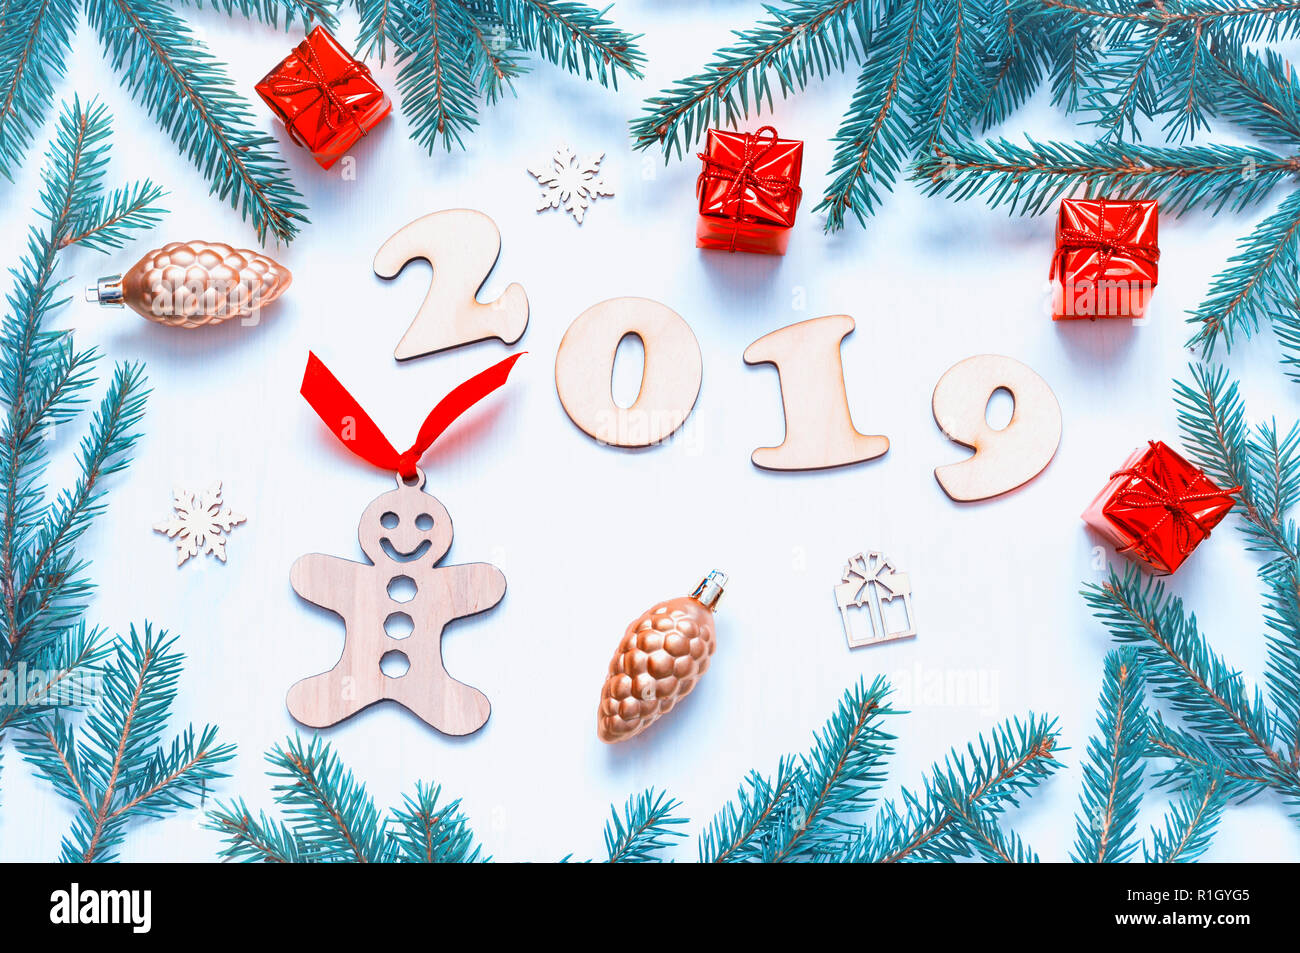 new year 2019 background with 2019 figures christmas toys blue fir tree branches flat lay top view of new year 2019 festive still life